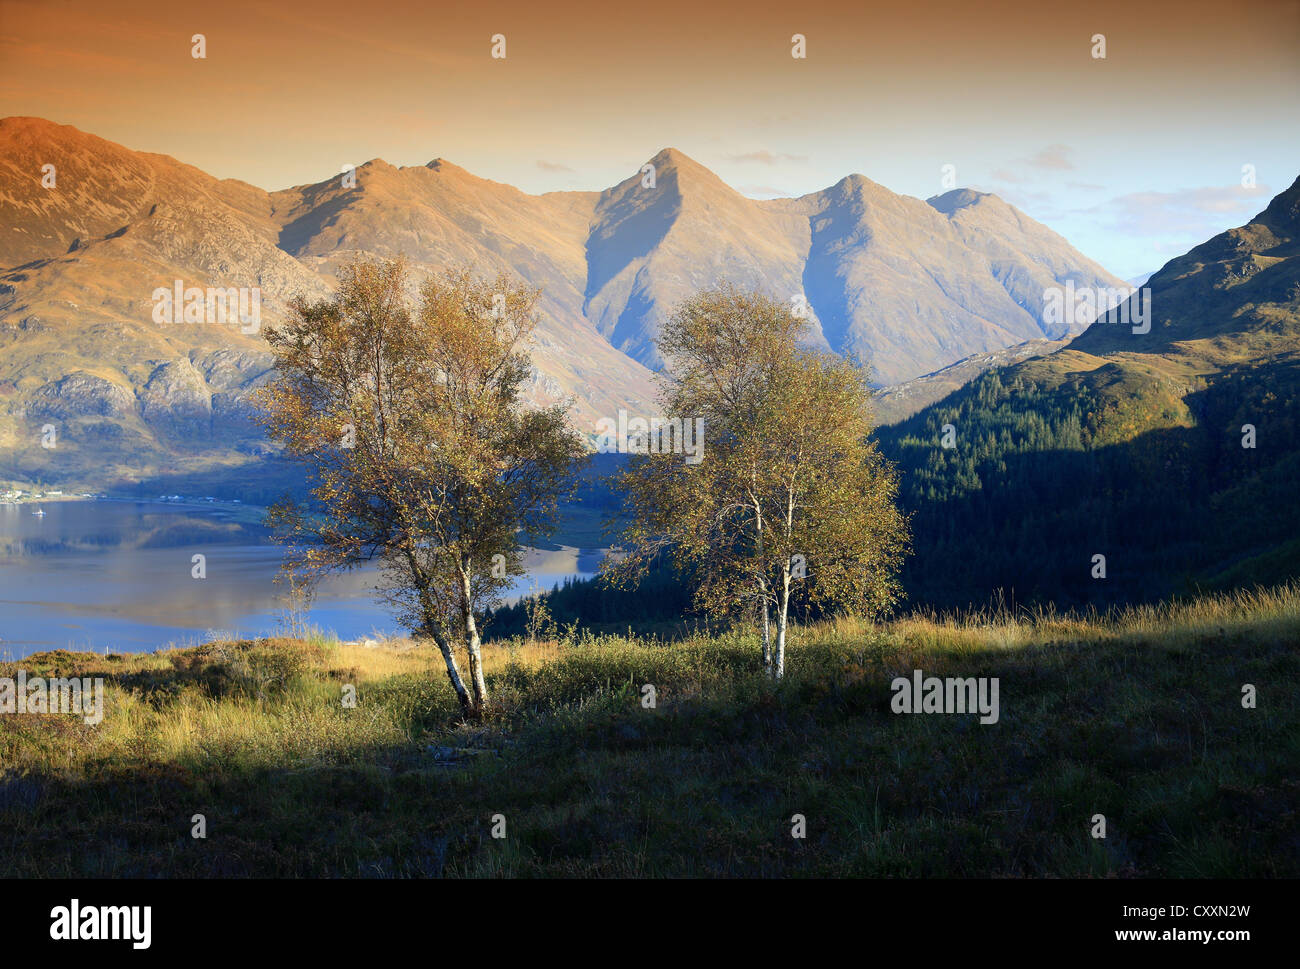 The Five Sisters of Kintail and Loch Duich, with silver birches in the foreground, are a much visited area of the - Stock Image